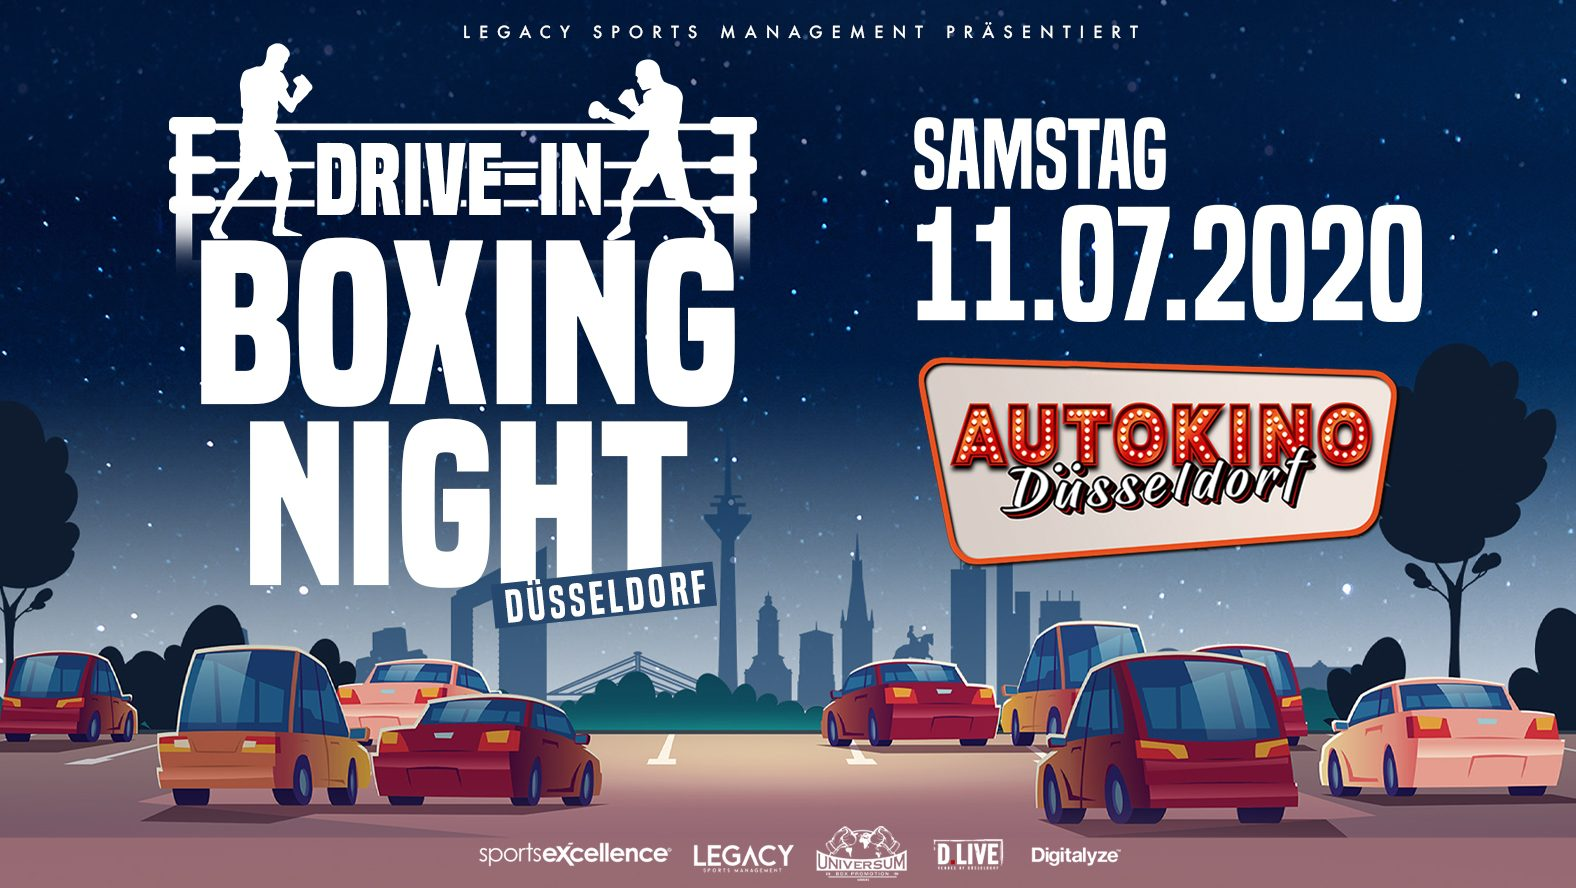 Am 11. Juli 2020 steigen im Autokino internationale Profiboxer in den Ring